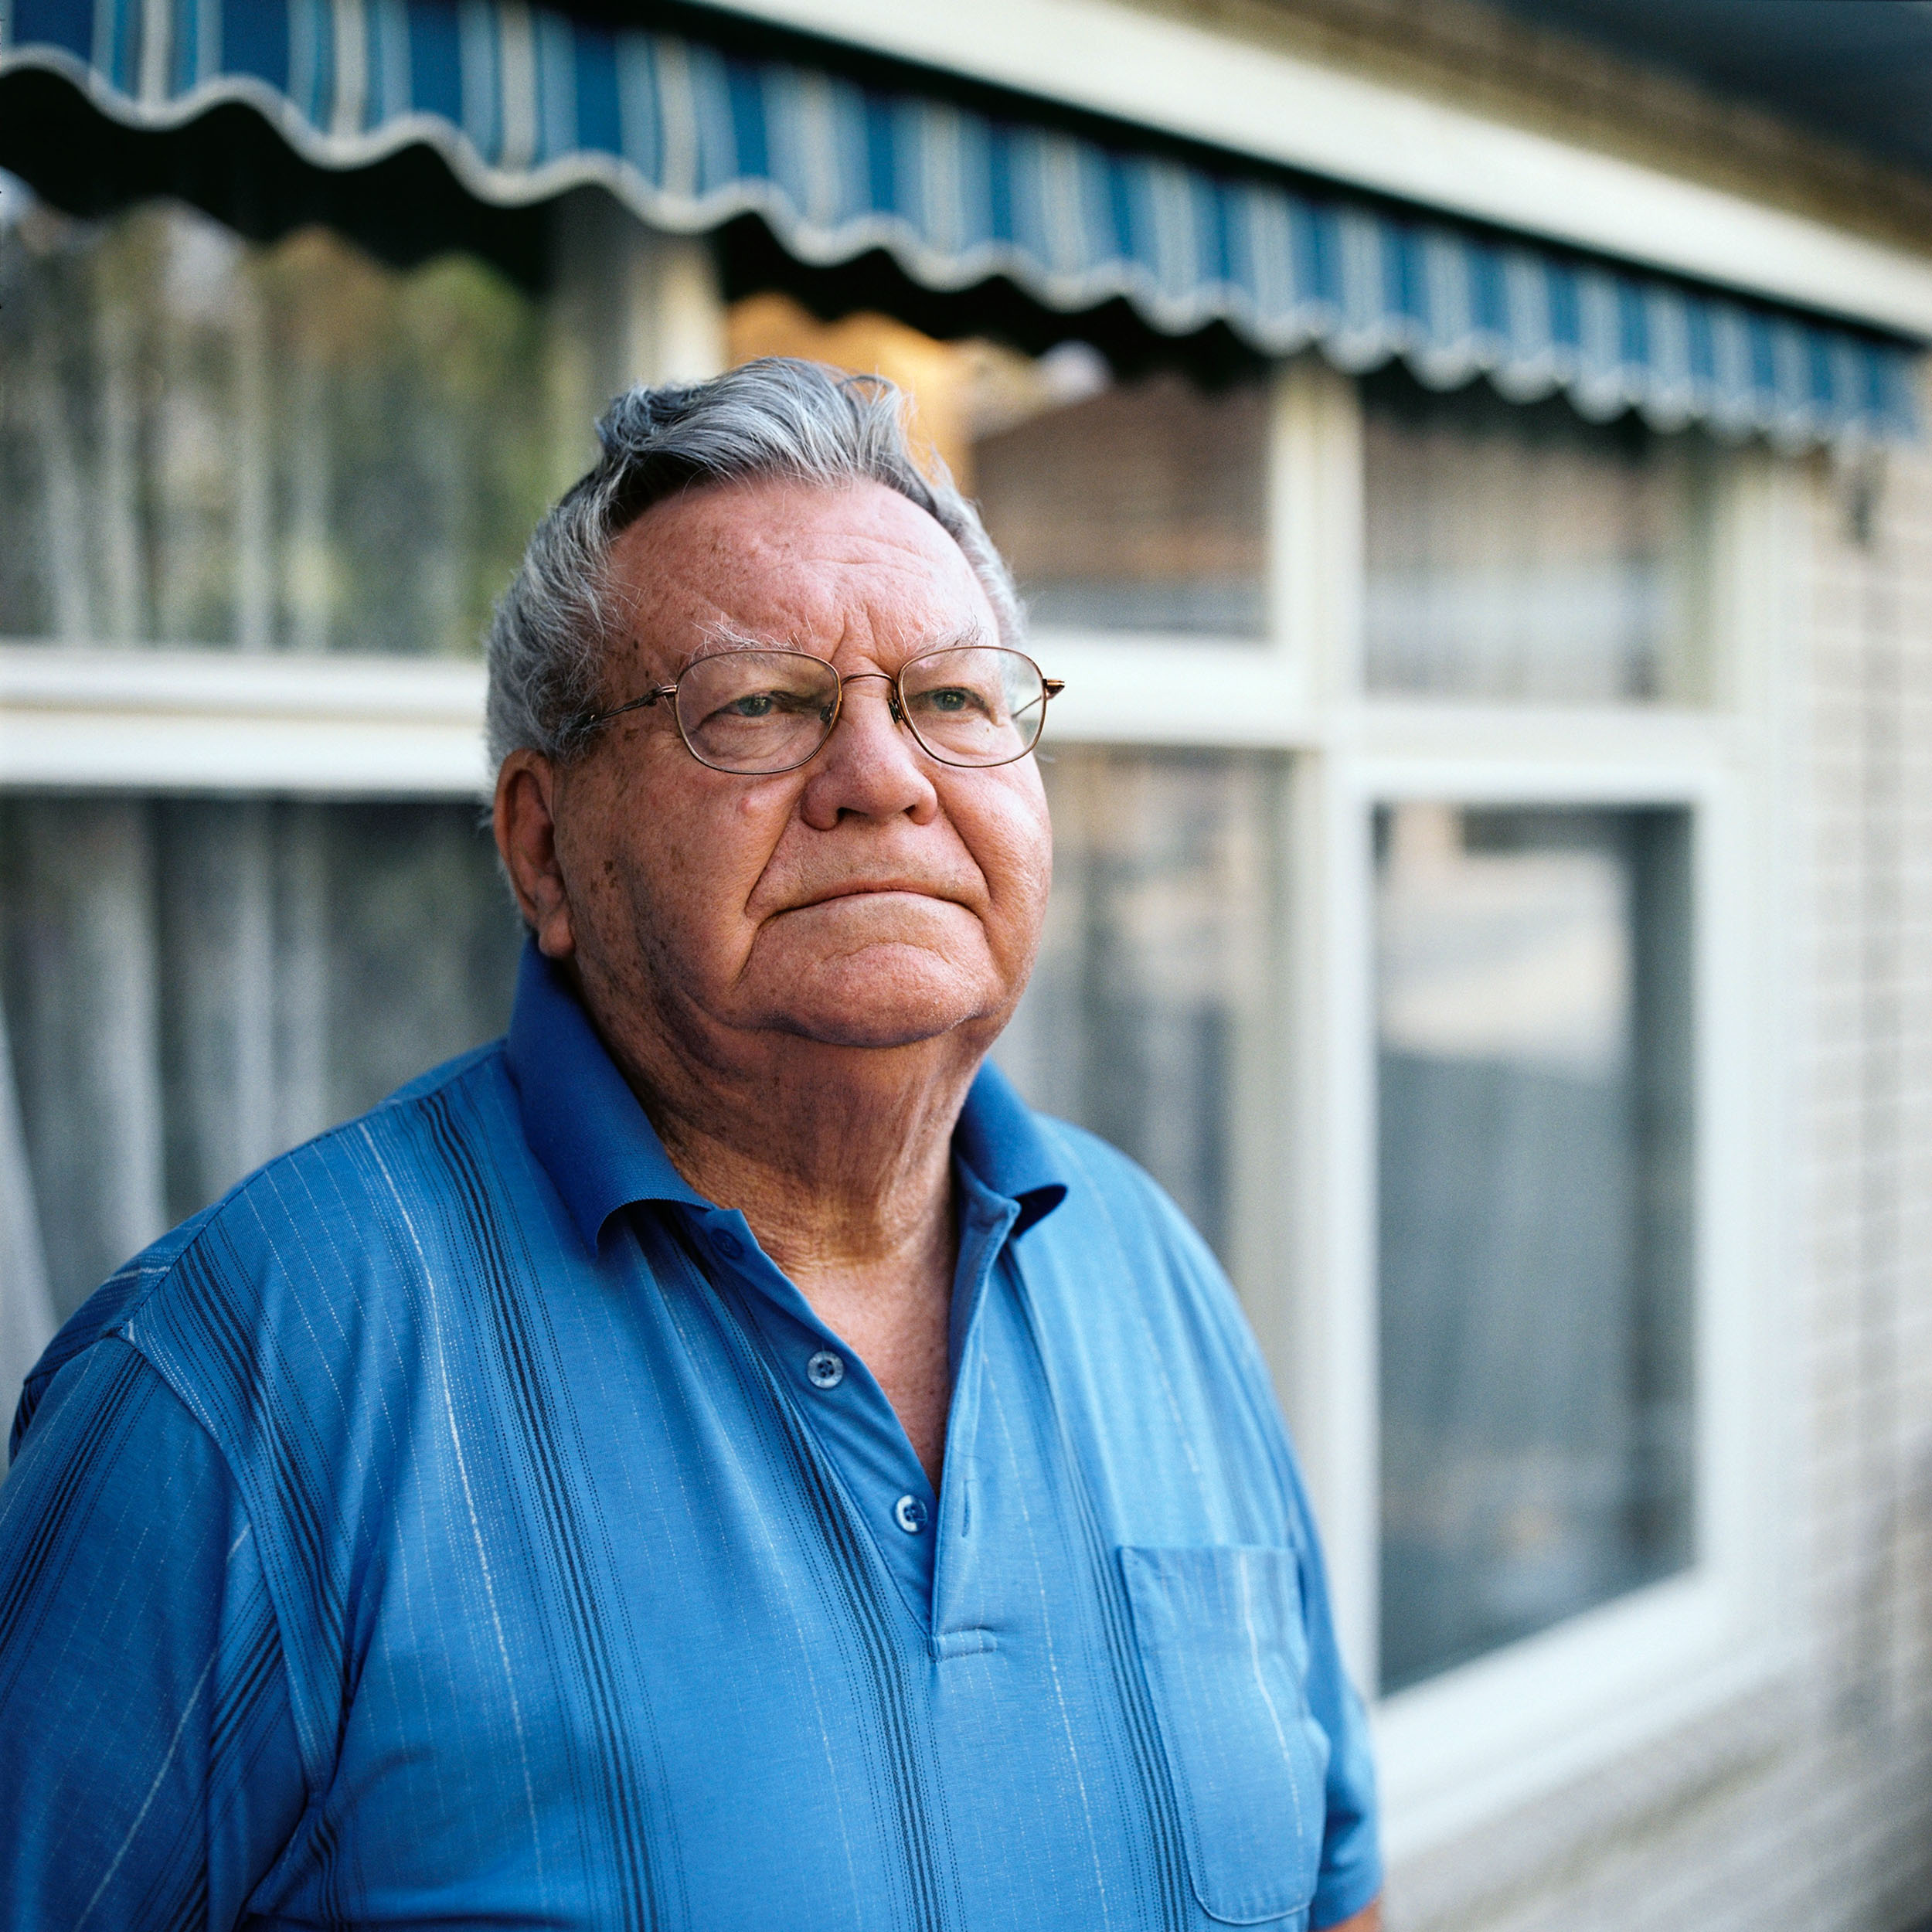 Patrick at home, Doncaster East, VIC. Patrick has asbestosis, a legacy of working in the building industry for over forty years.